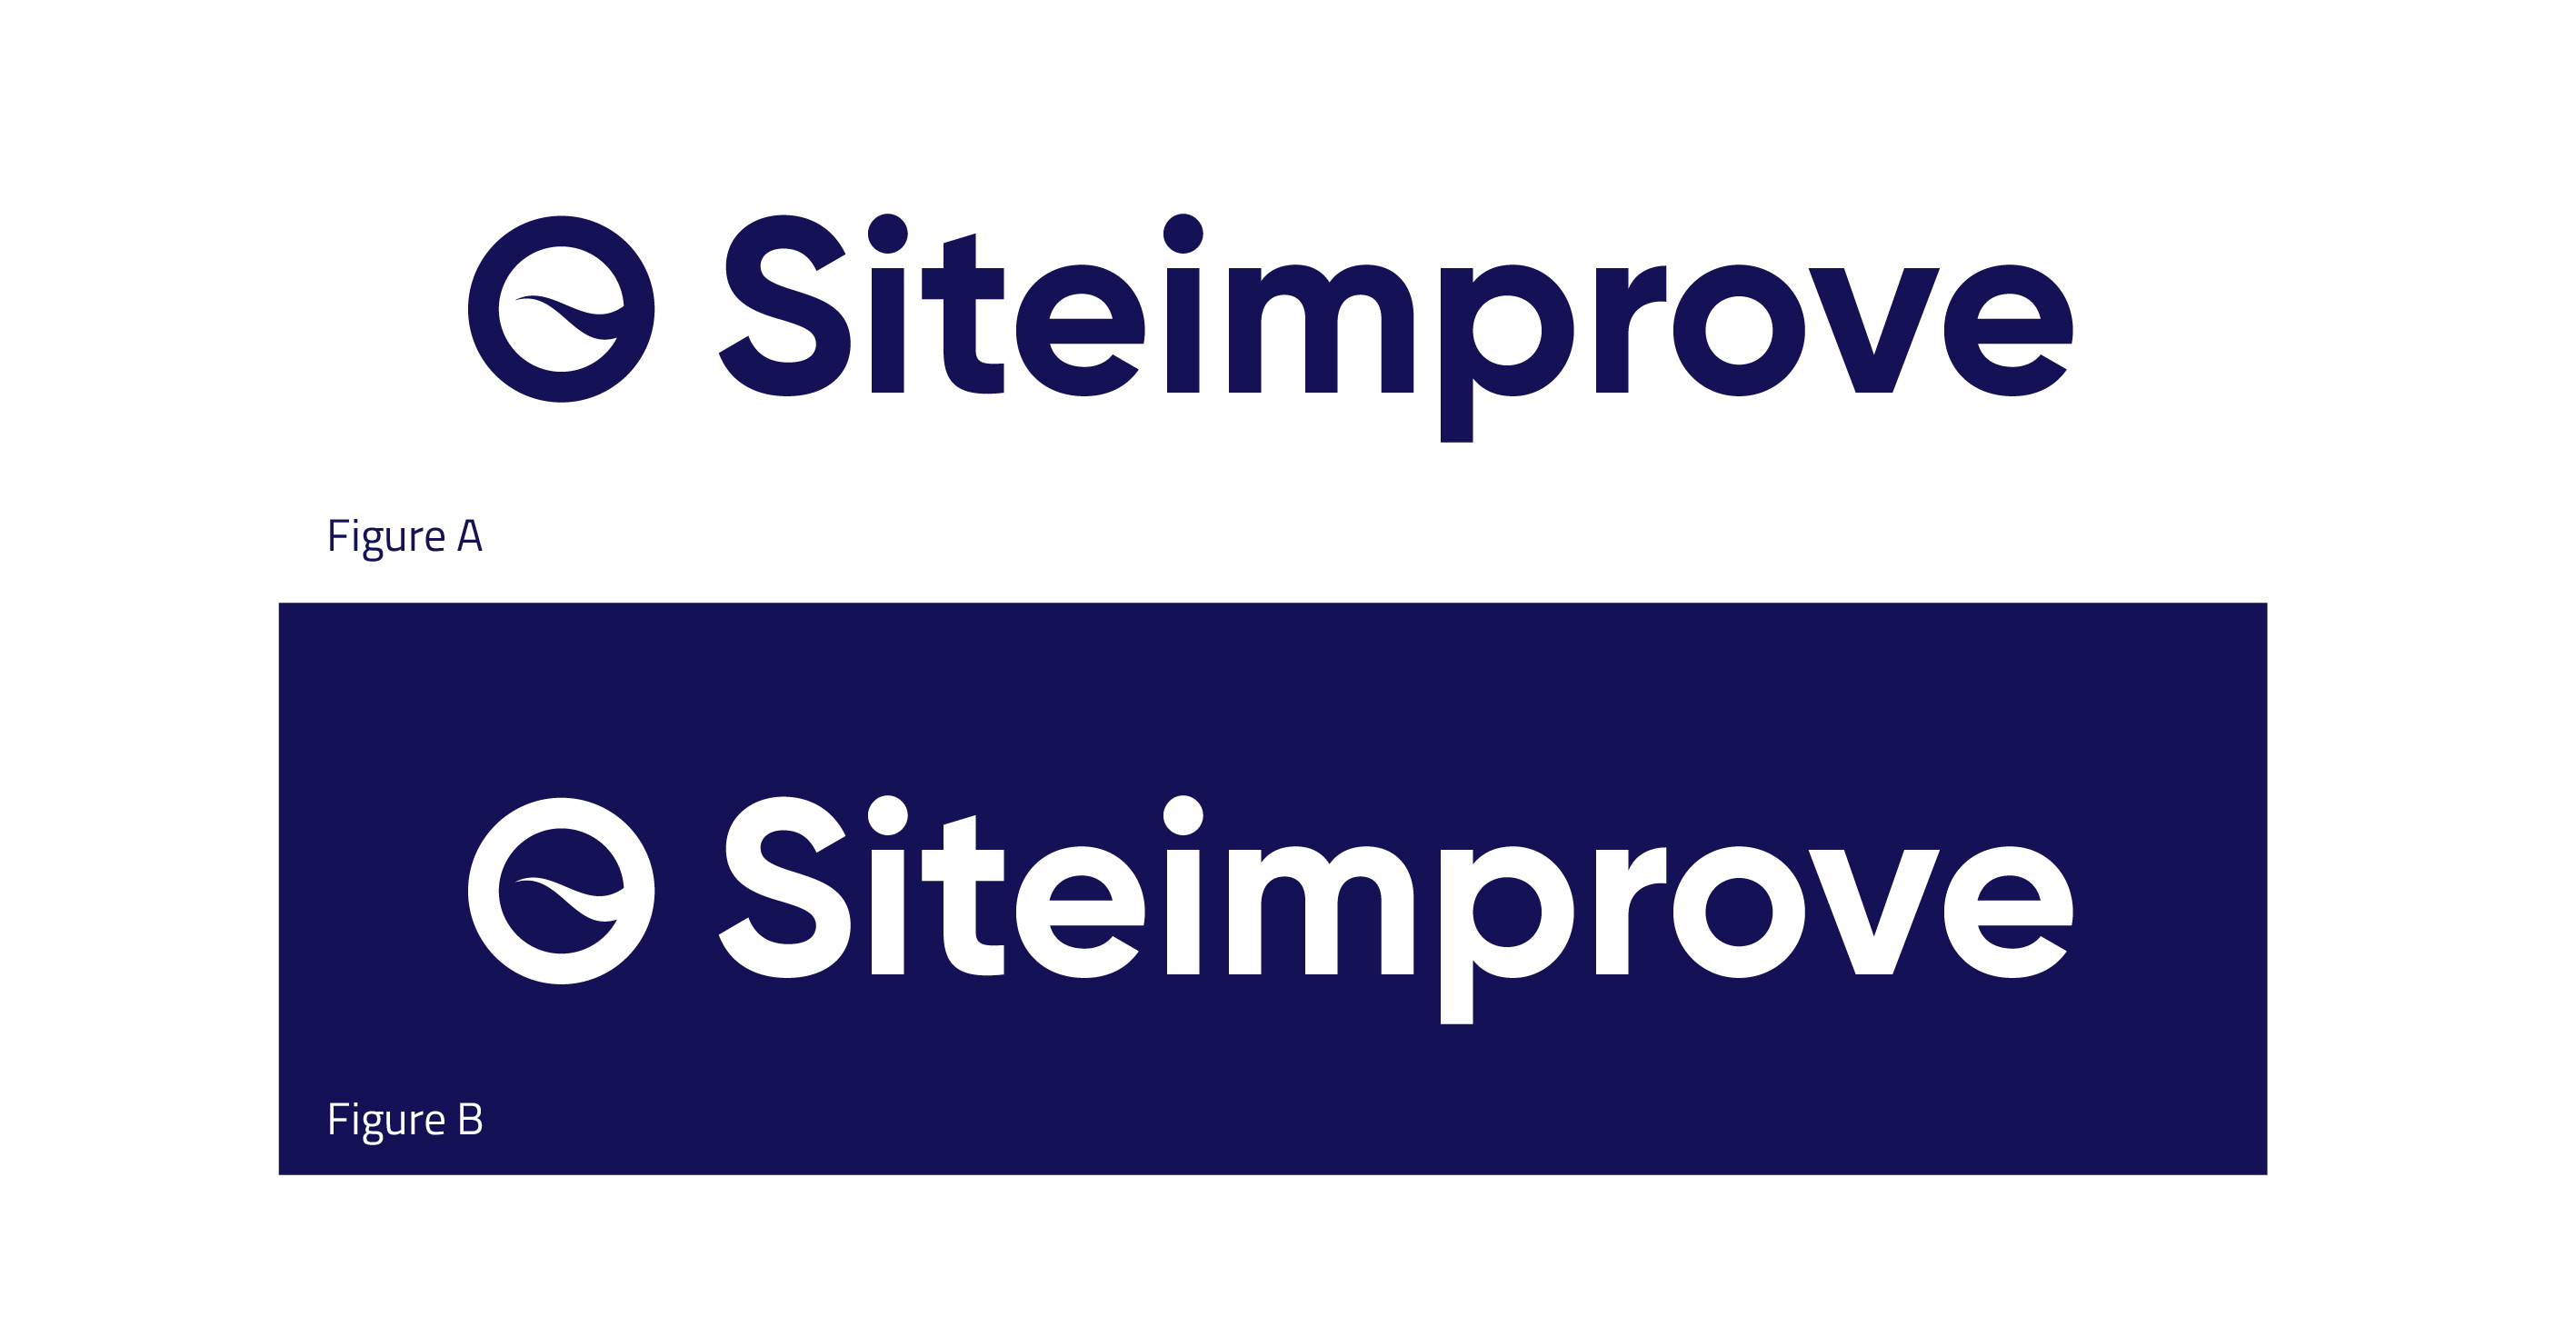 Siteimprove logo on white and blue background